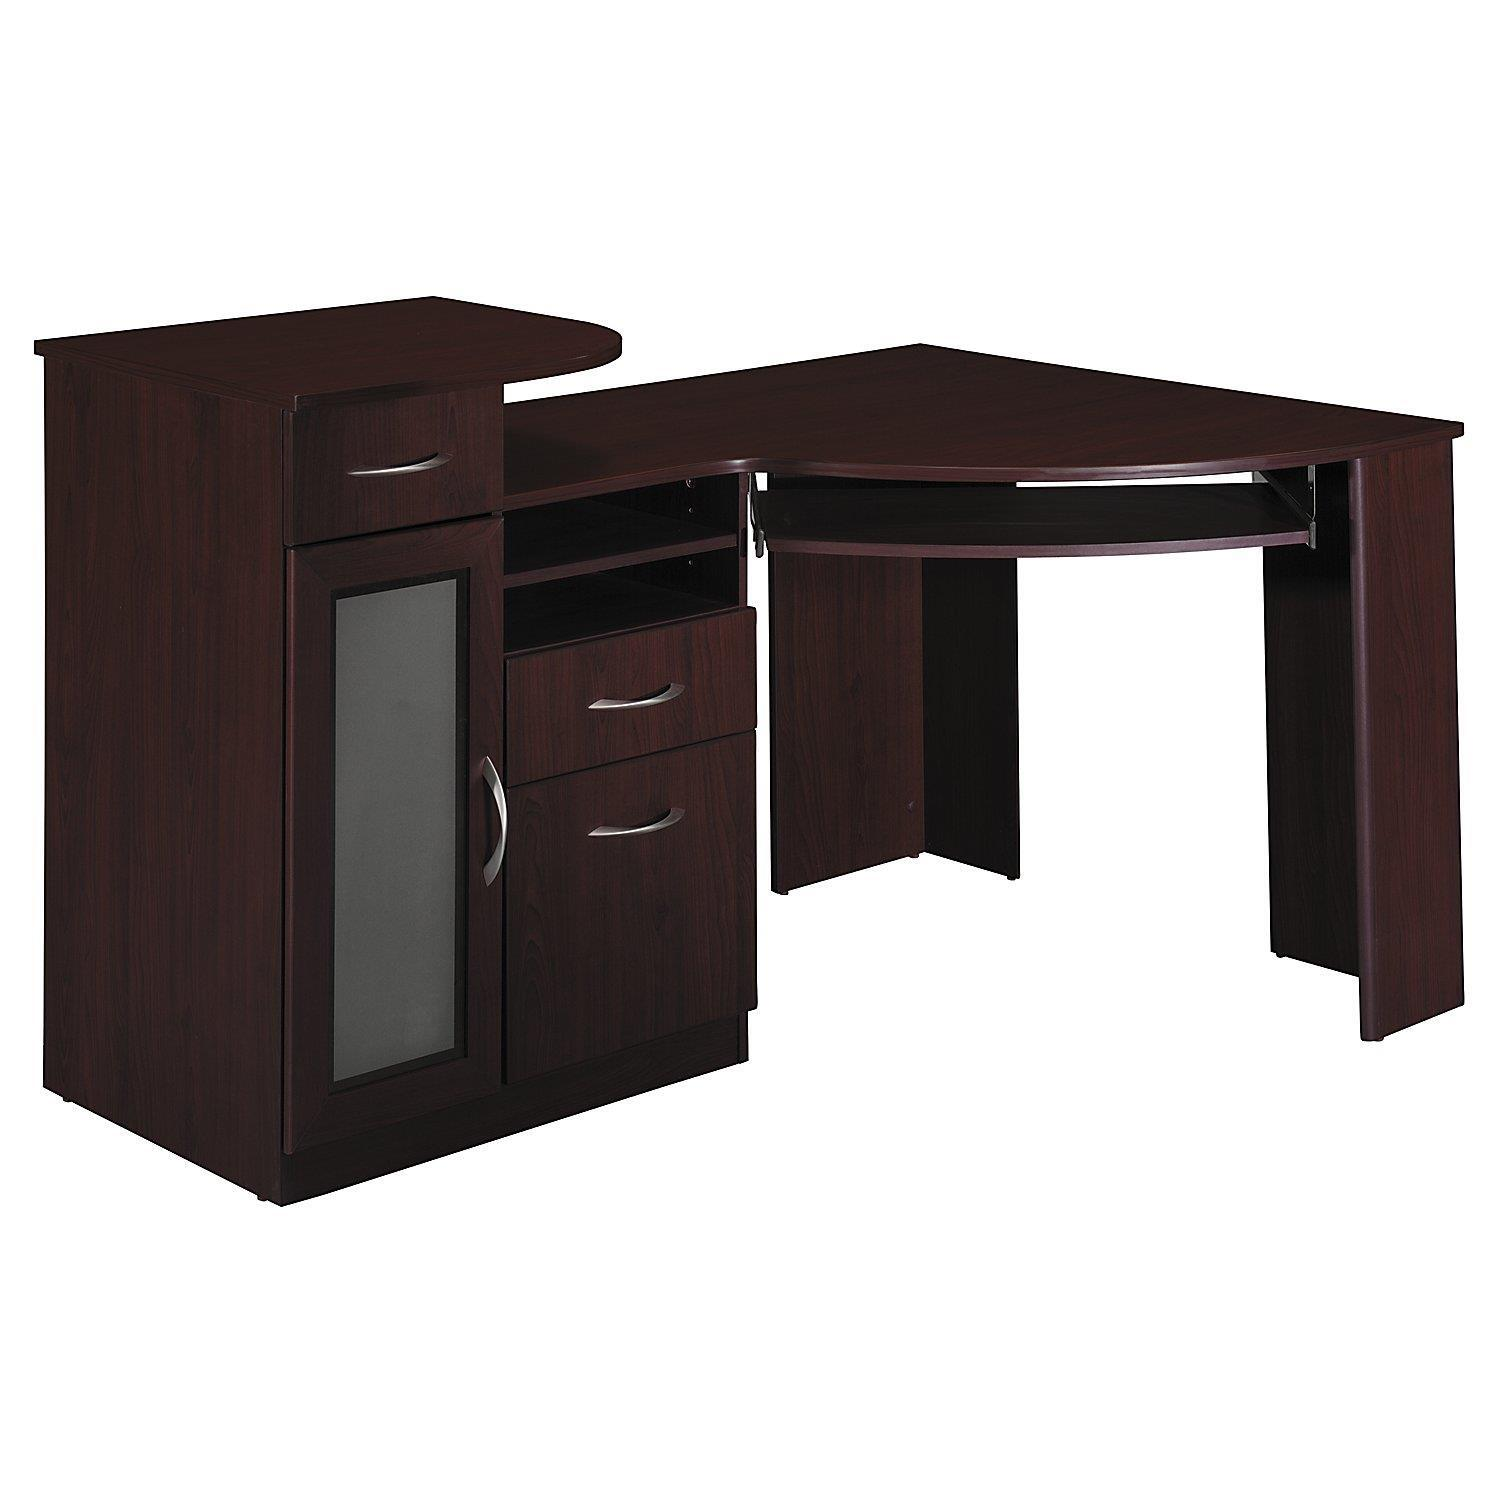 Furniture Home Goods Appliances Athletic Gear Fitness